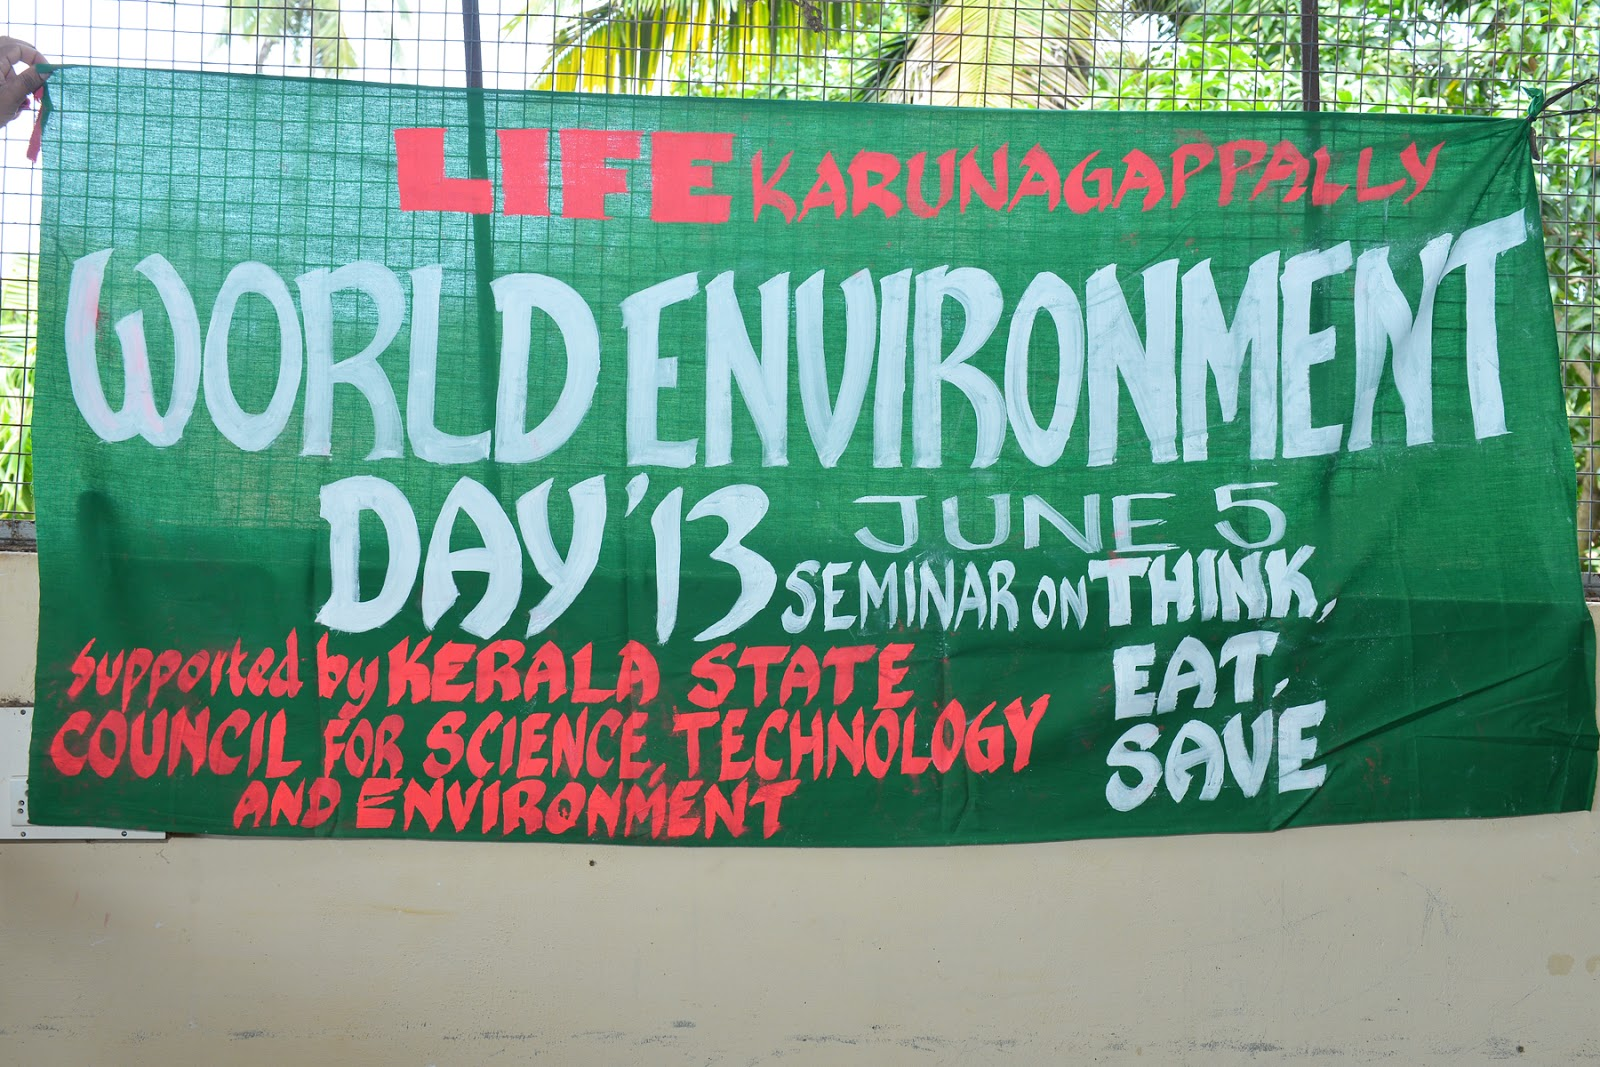 life karunagappally world environment day observation by life essay poster writing competiton of u p students in u p g s